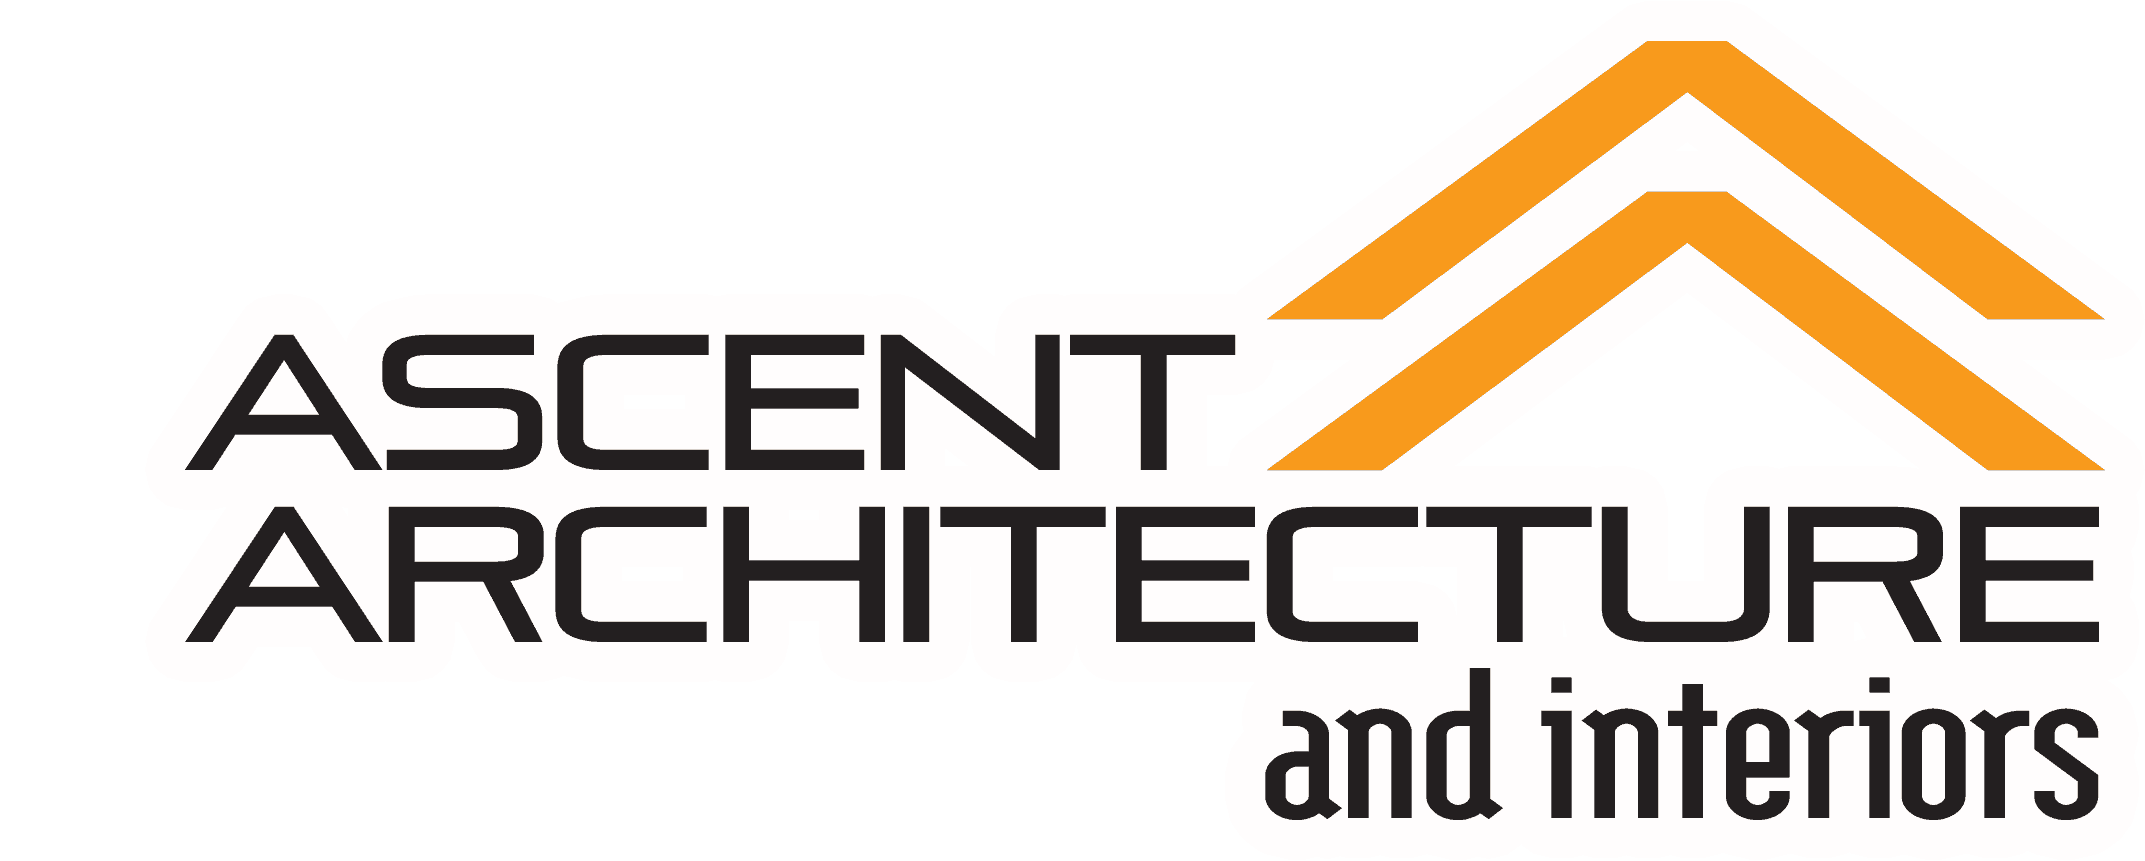 Ascent Architecture & Interiors, Bend, Oregon: Architects for Commercial, Senior, Housing Design